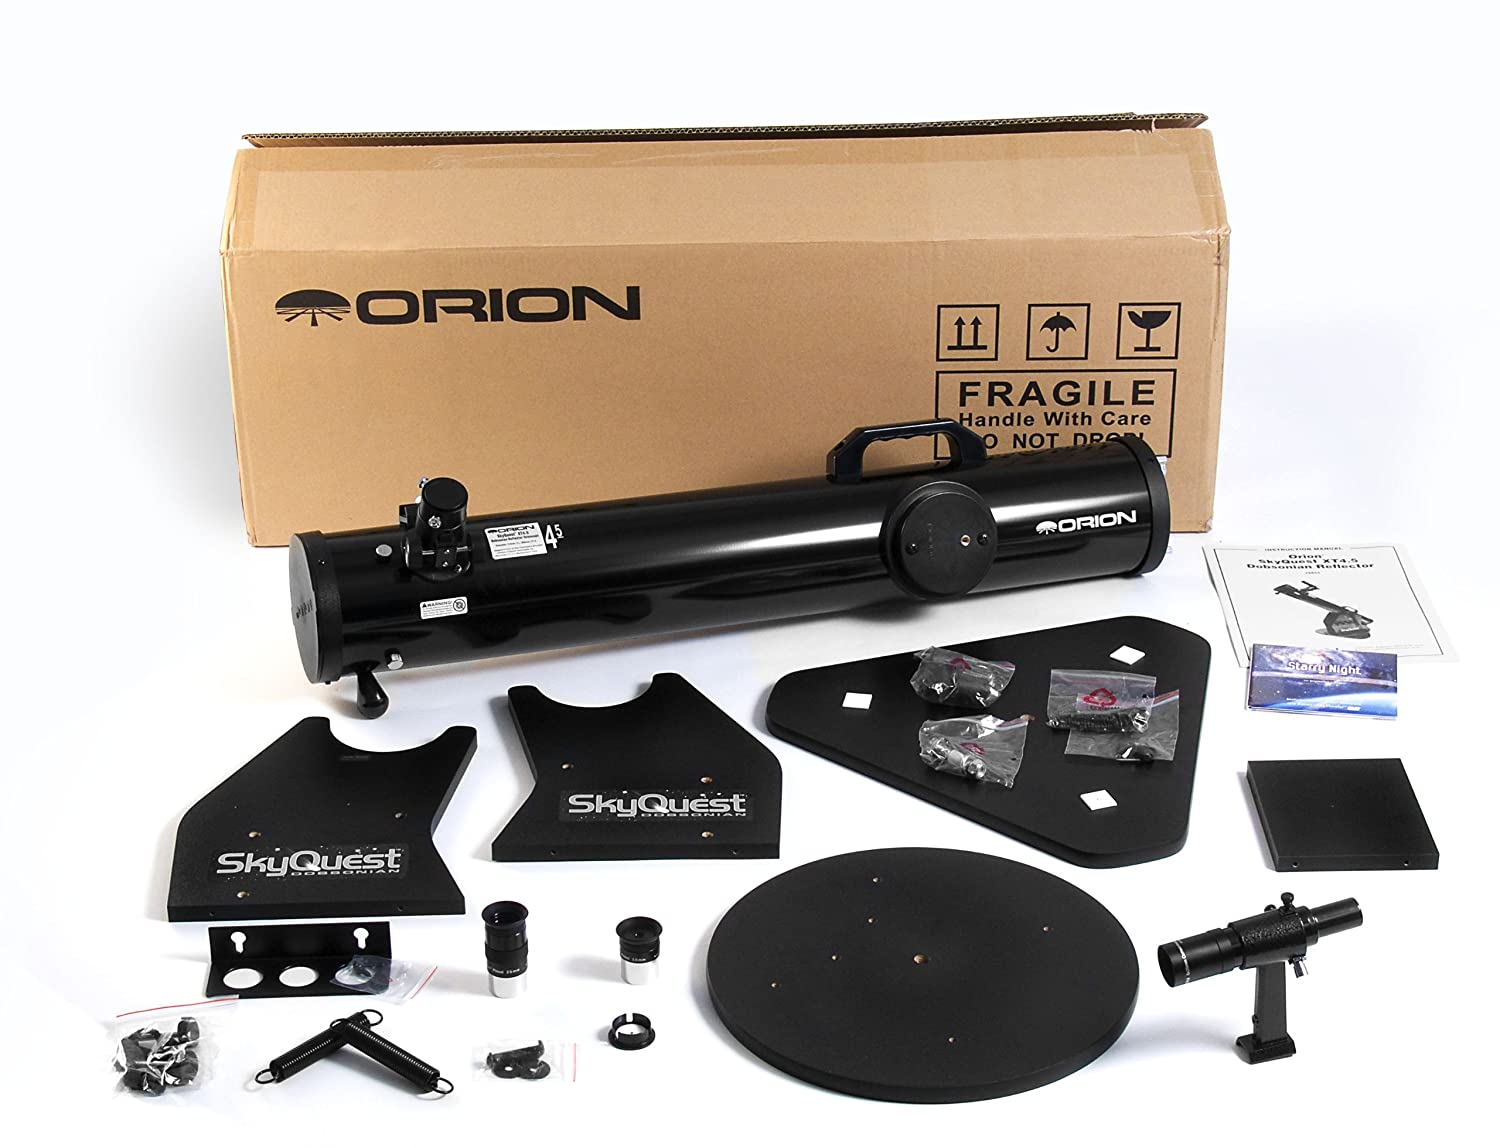 Orion 10014e 17x Black Reflector Telescopes 88.9 cm, 8/kg, 11.4/cm in Metal and Wood